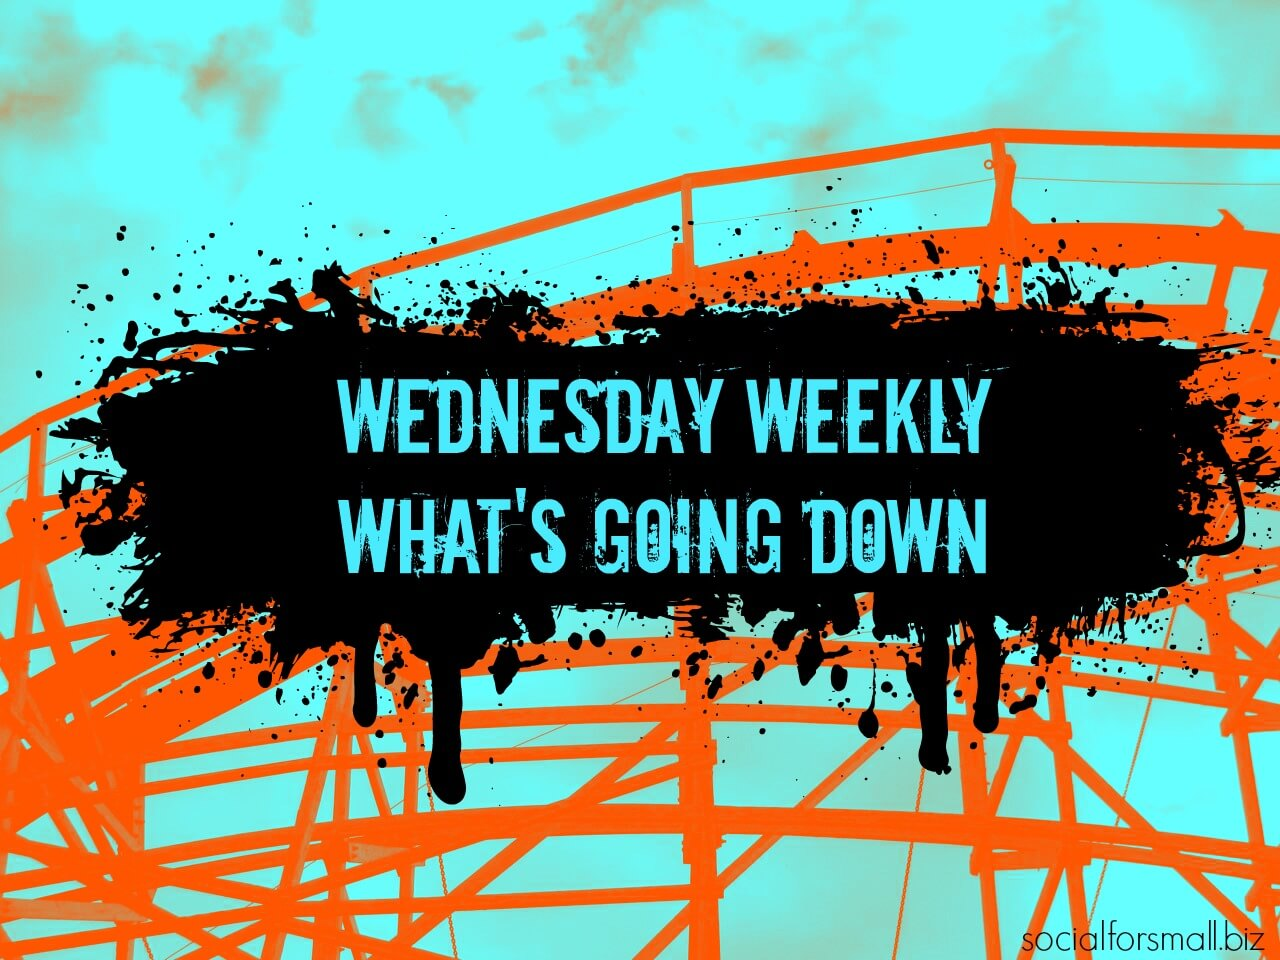 wednesday weekly what's going down online marketing links